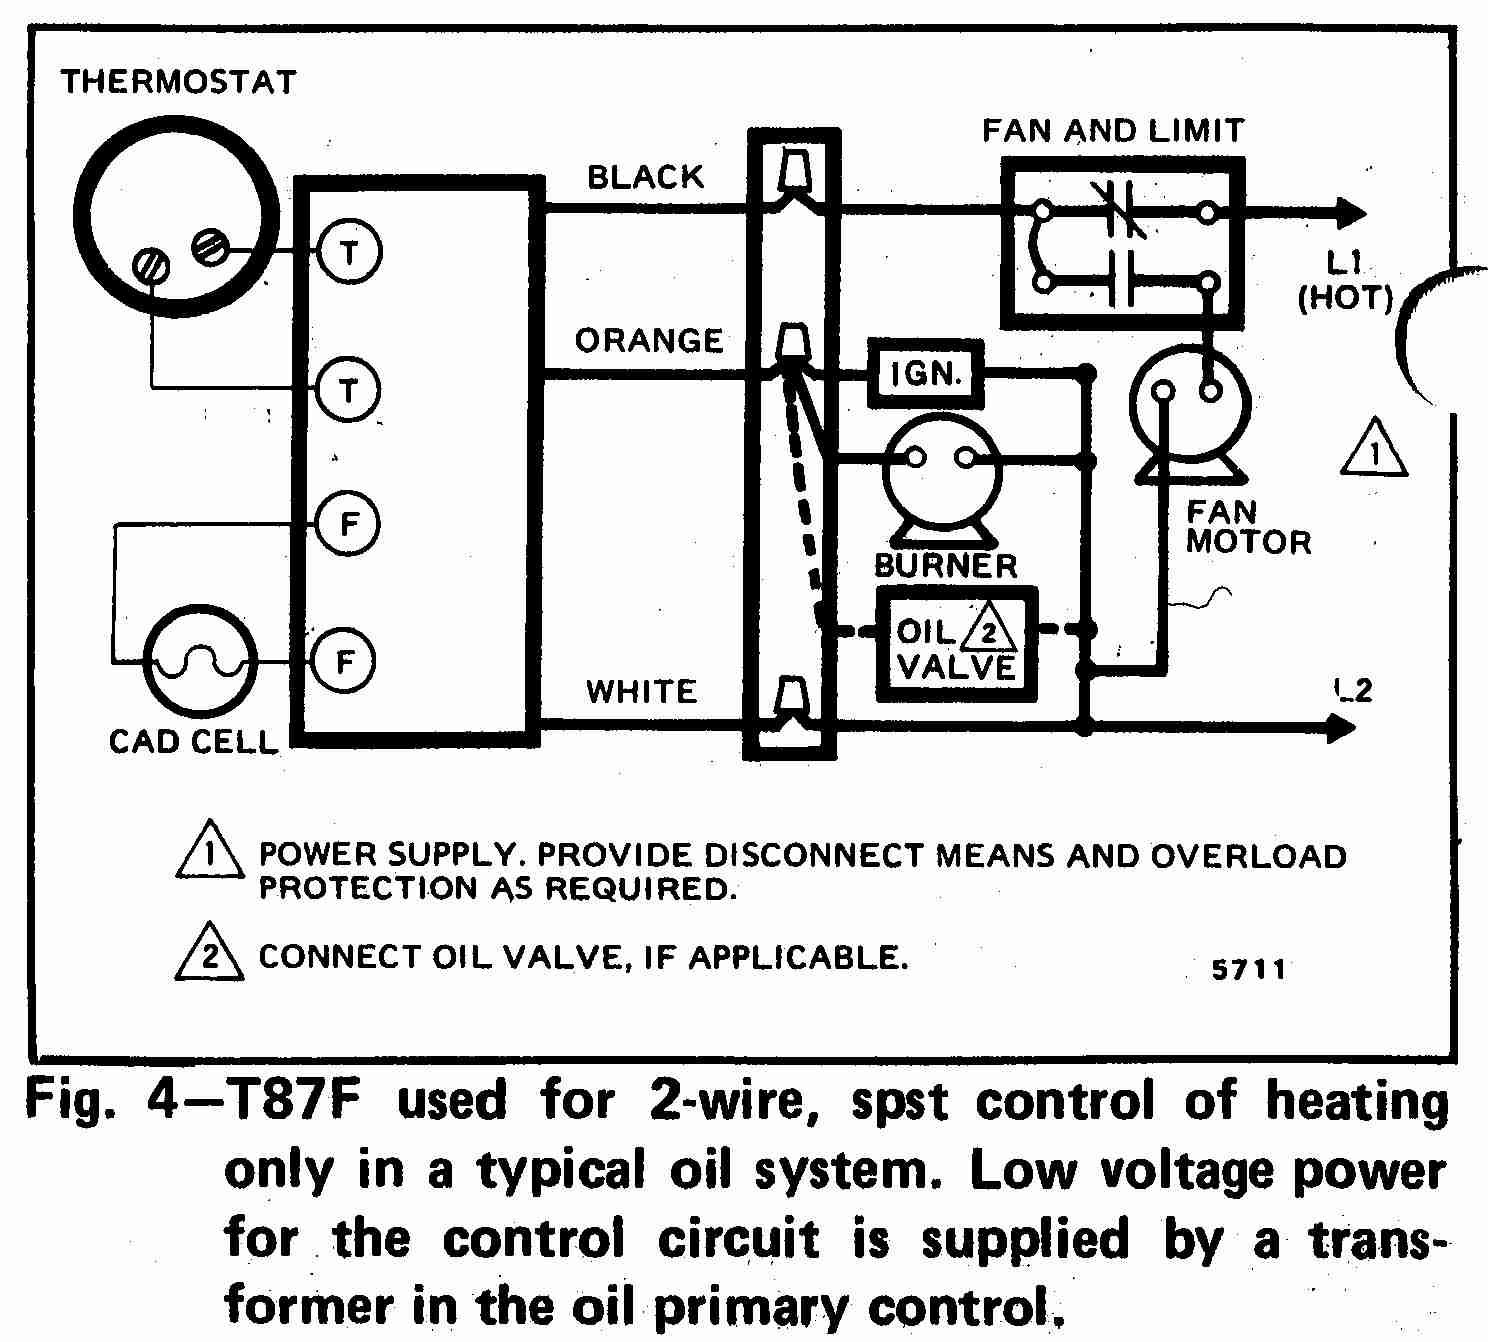 Thermostat Wiring Diagram 4 Wire from inspectapedia.com